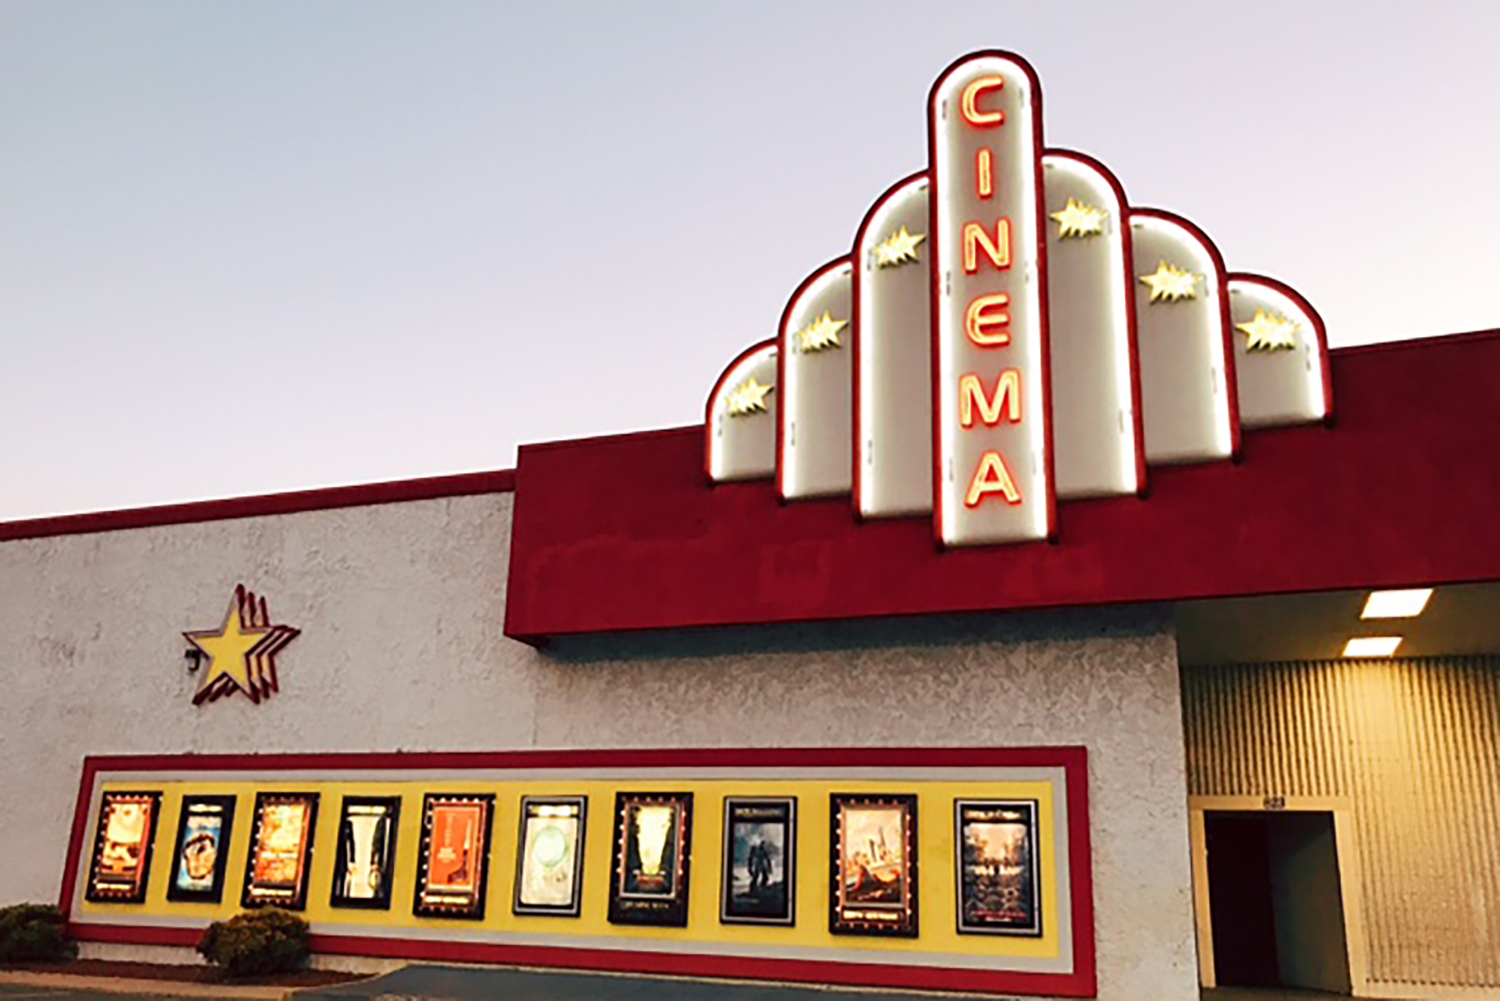 Find all the Regal Movie Theater Locations in the US. Fandango can help you find any Regal theater, provide movie times and tickets.